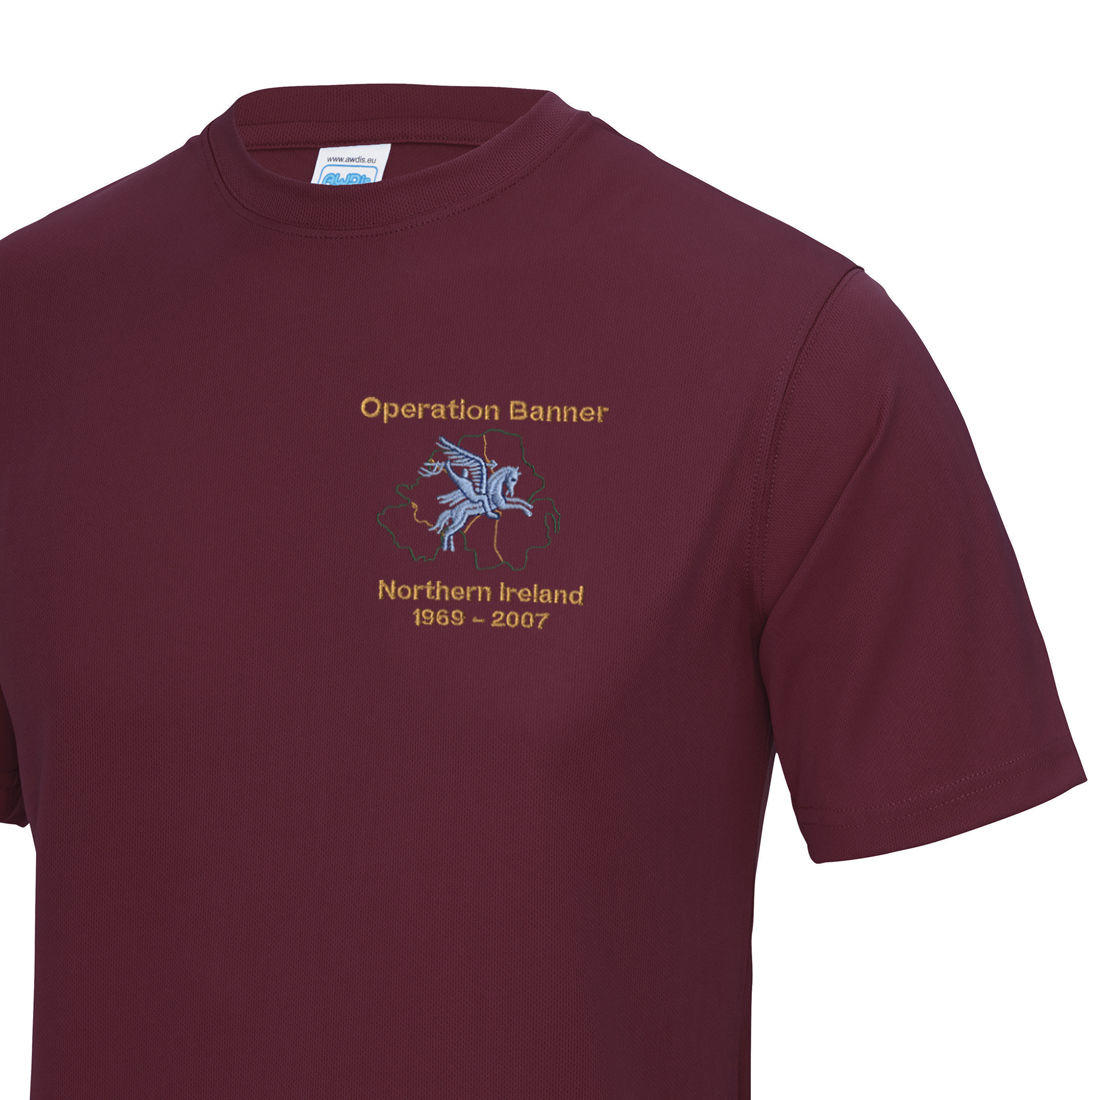 Gym/Training T-Shirt - Maroon - Operation Banner (Pegasus)